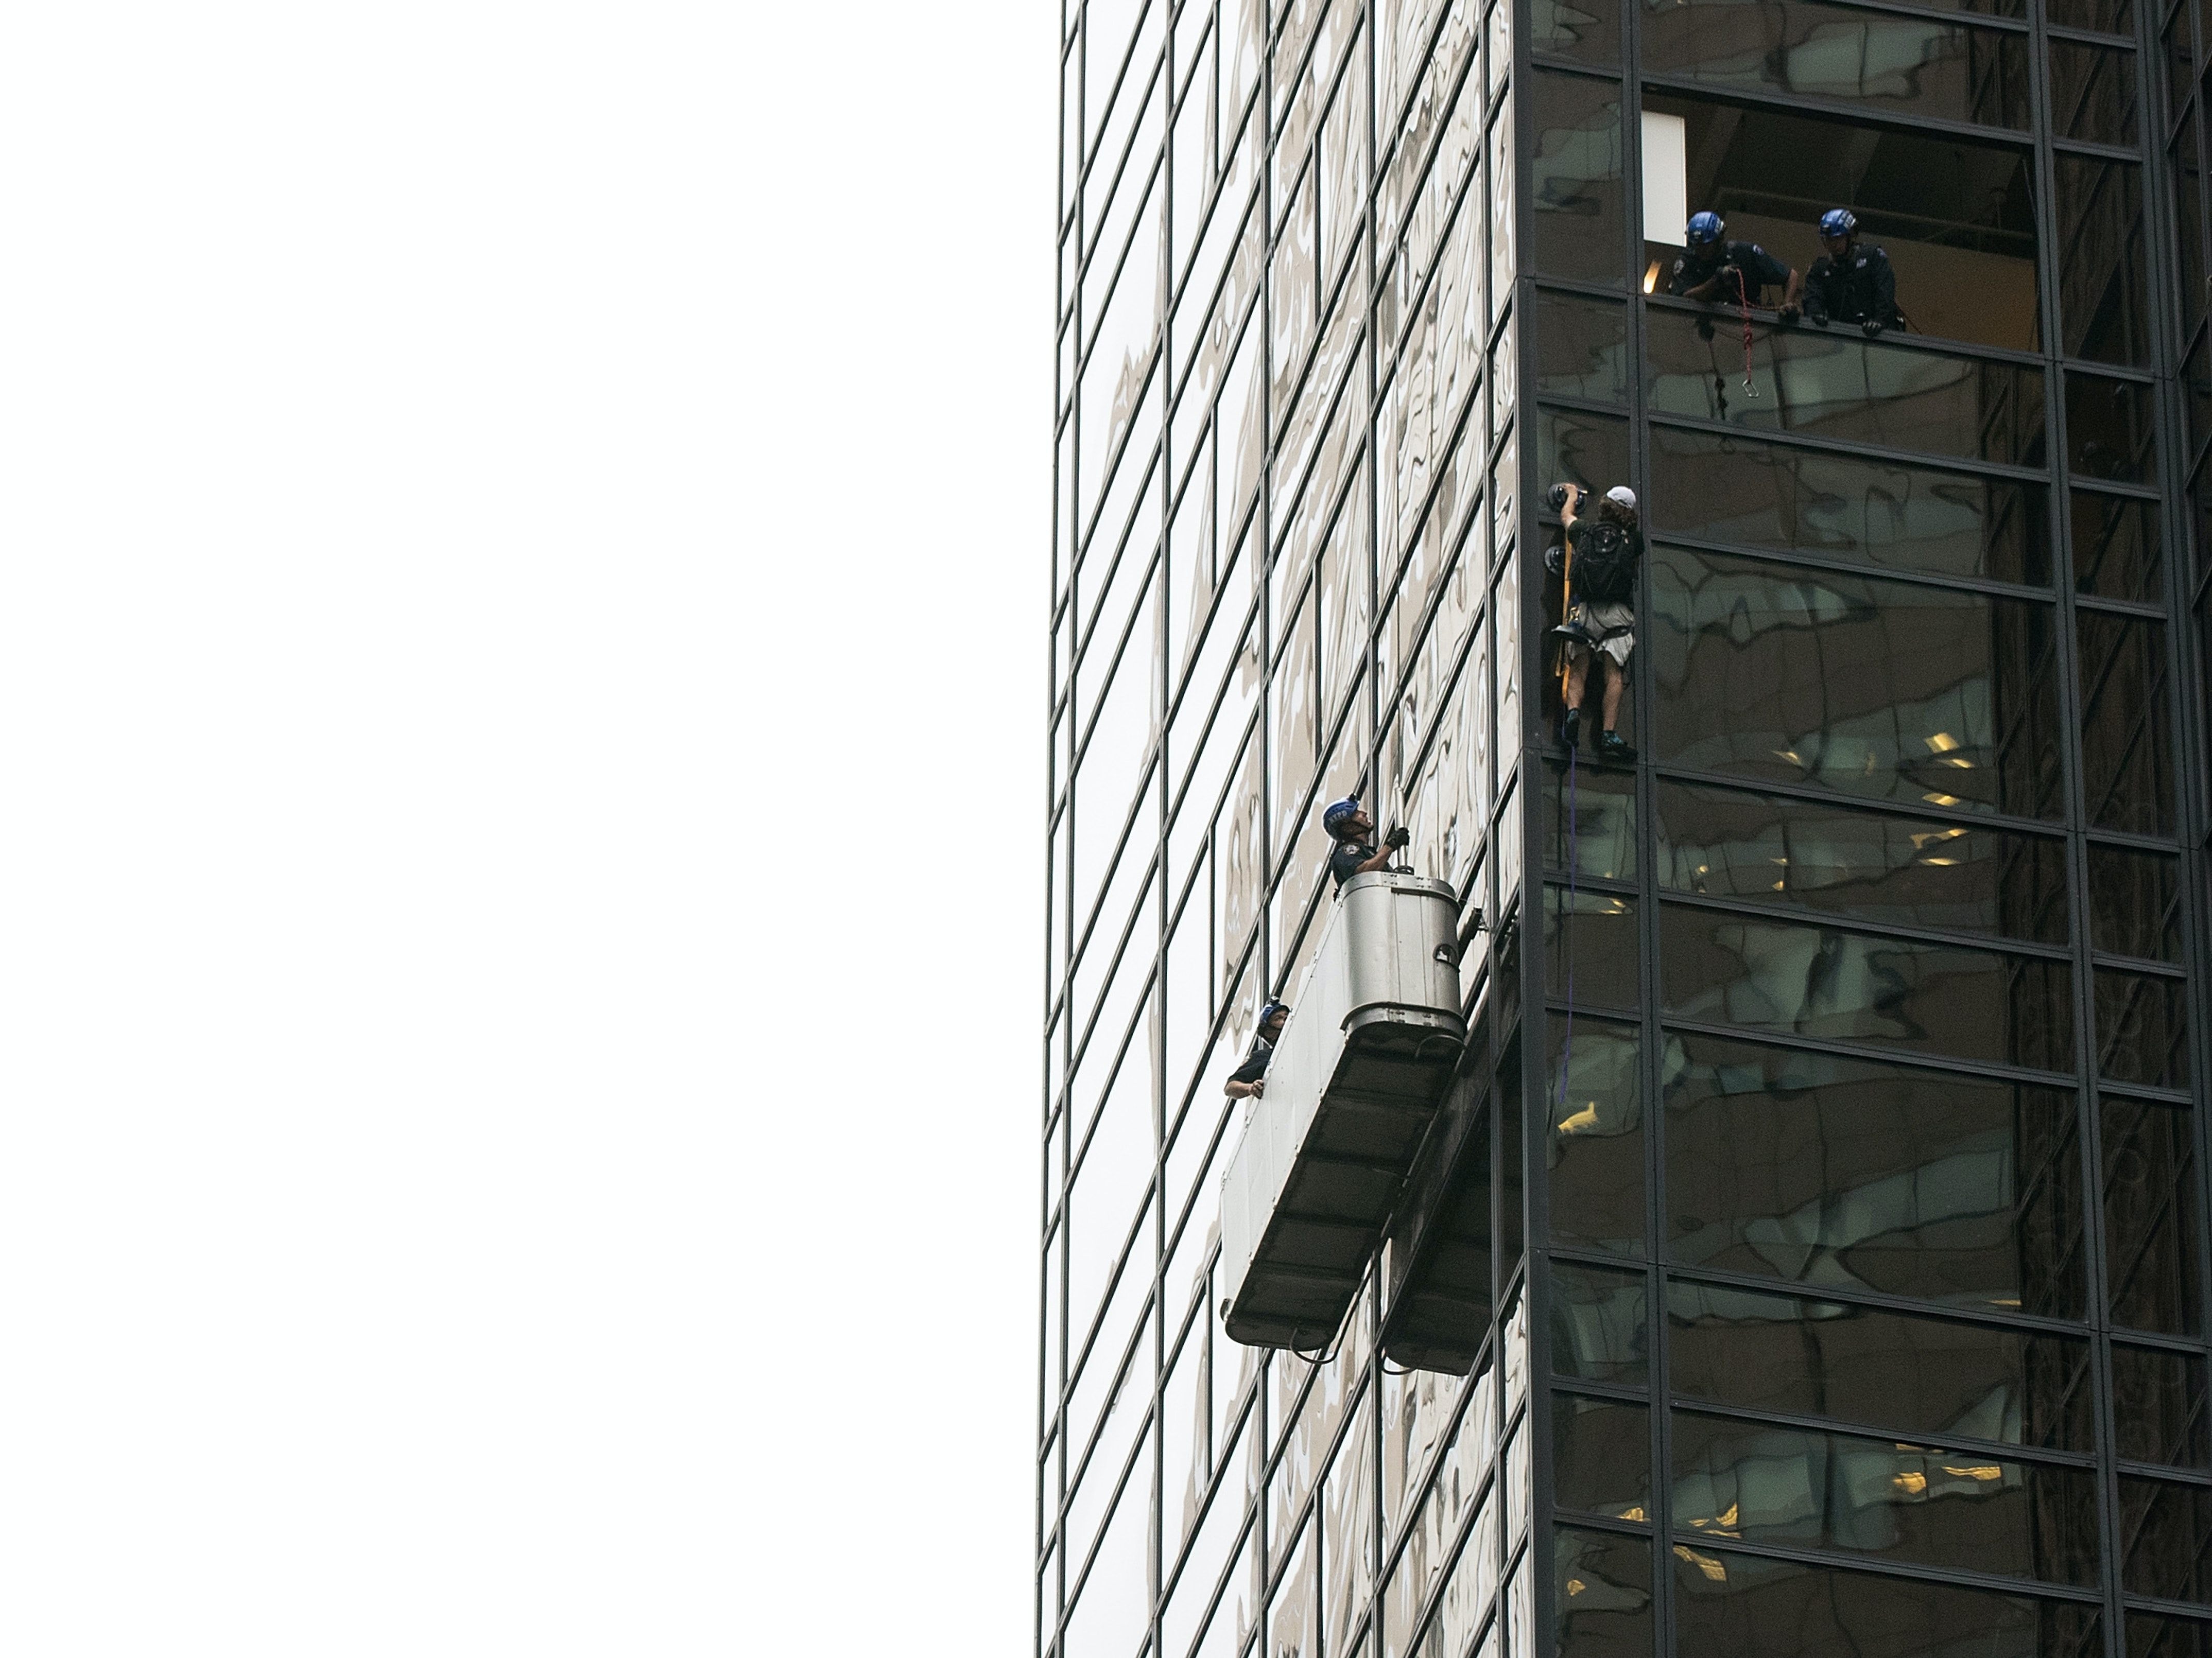 NEW YORK, NY - AUGUST 10: A man identified as 'Steve from Virginia' climbs up the Trump Tower on August 10, 2016 in New York City. The man used suction cups to scale more than 20 stories of GOP Presidential Candidate Donald Trump's signature skyscraper in Manhattan. (Photo by Drew Angerer/Getty Images)